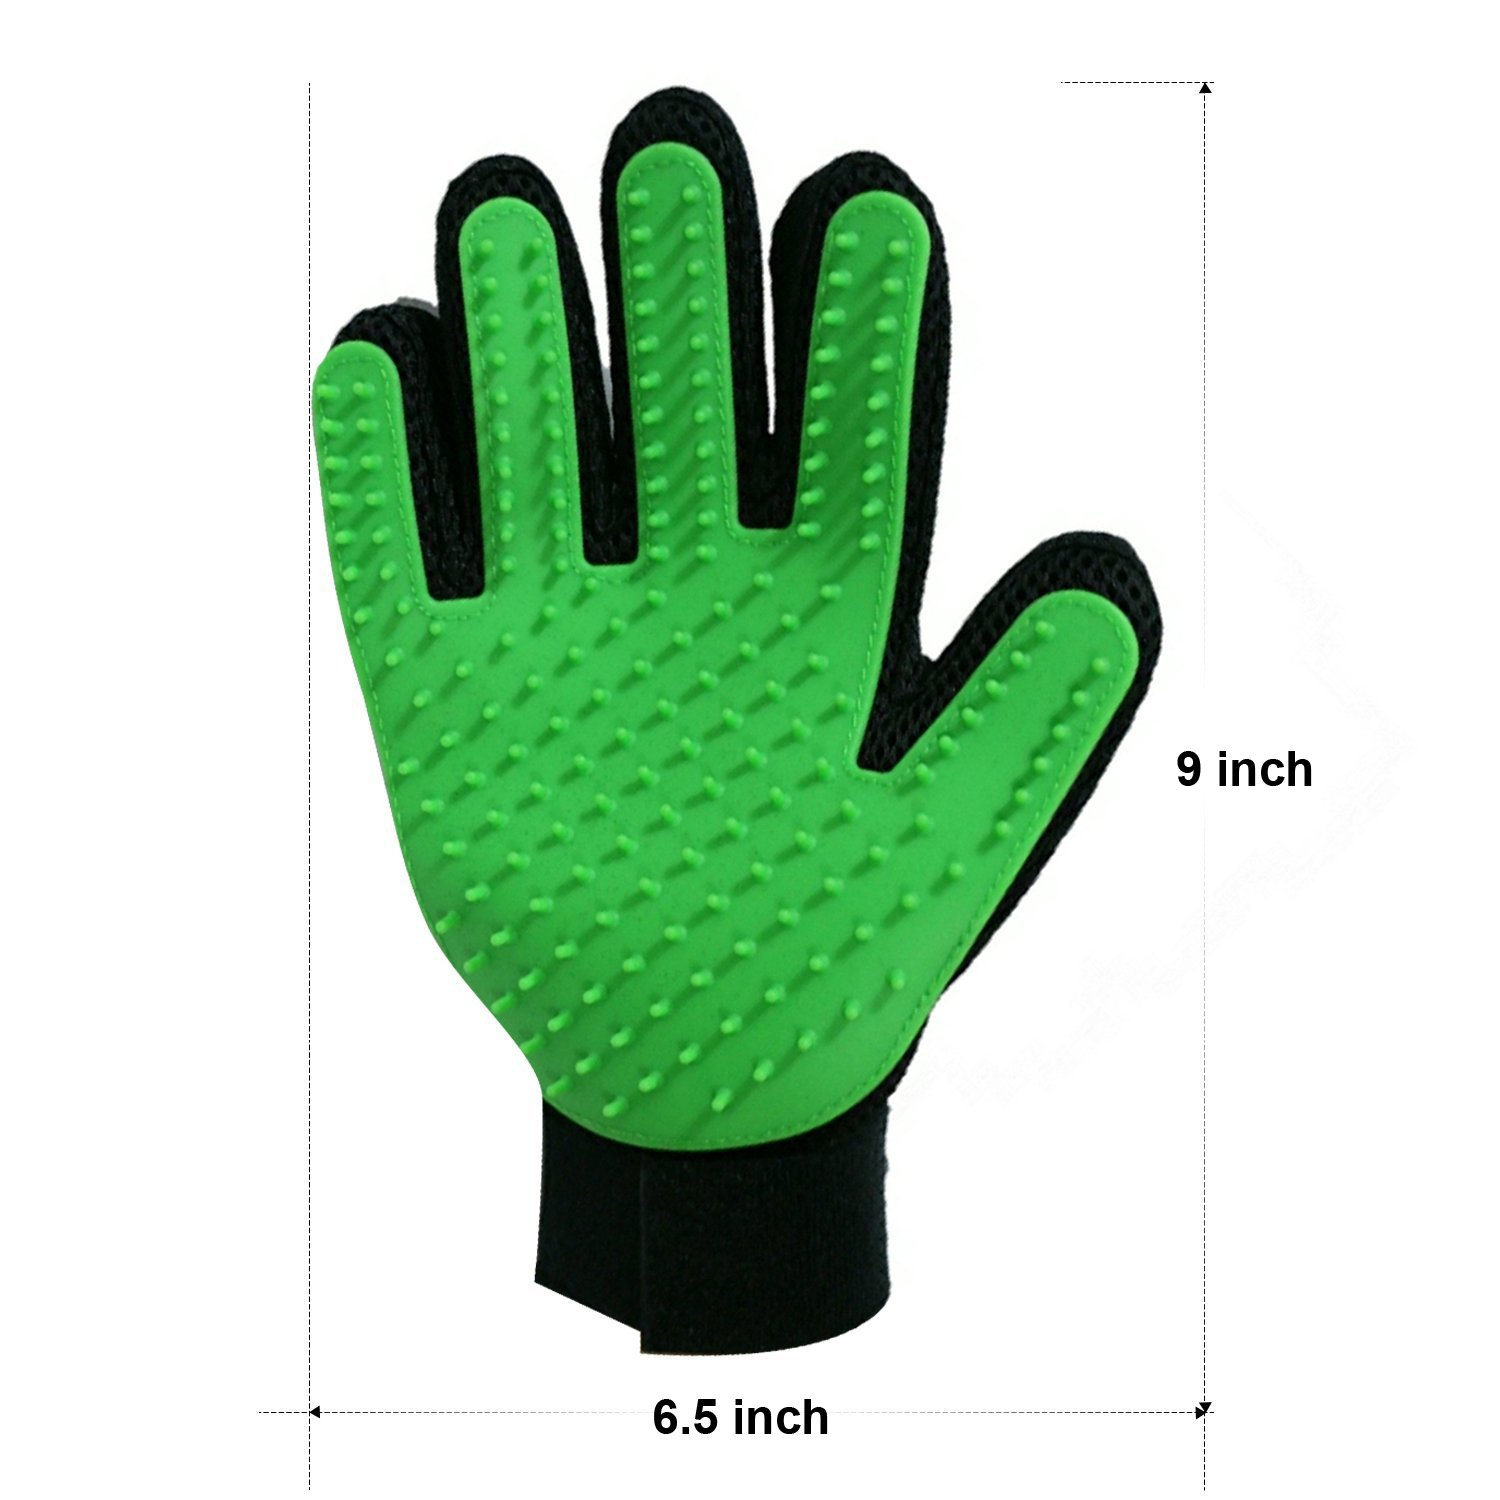 Petbob Pet Grooming Glove,Pet Deshedding Glove,Soft Gentle Pet Bath Massage Mitt,Silicone Pet Dematting Hair Removal Brush Glove Comb, For Long and Short Haired Dogs Cats Bunnies (green) by petbob (Image #6)